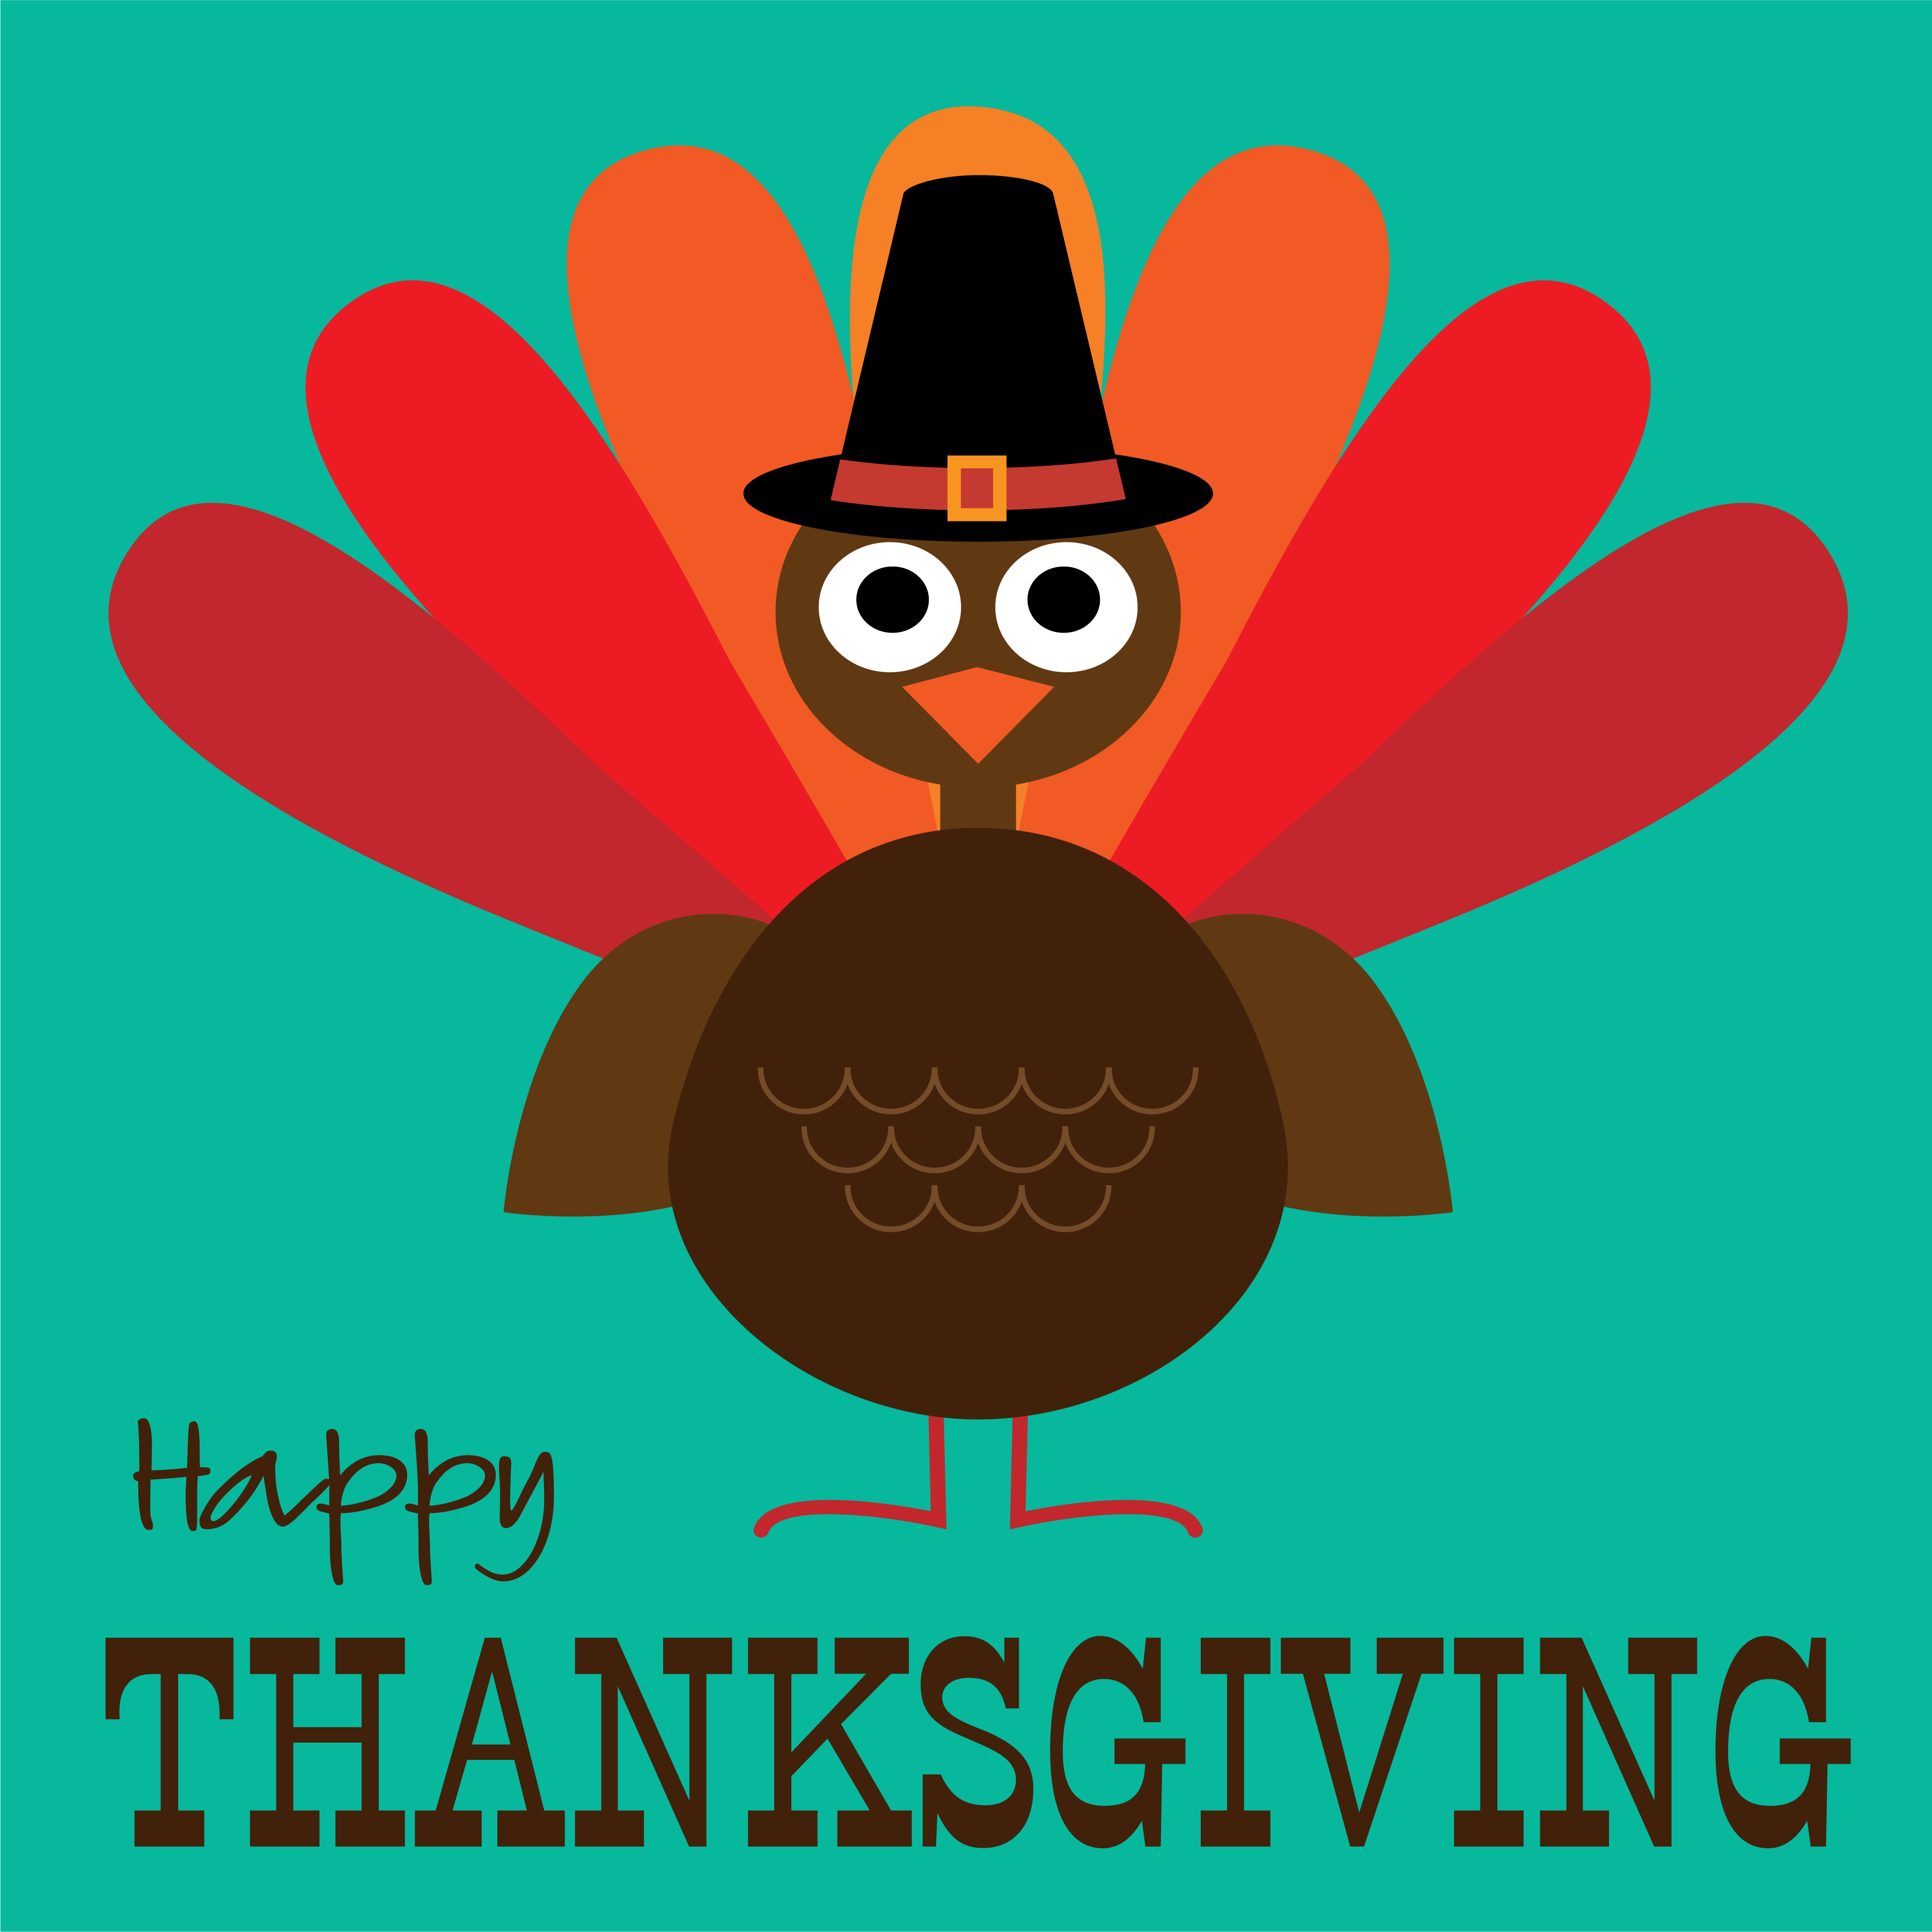 thanksgiving cute turkey graphic - Download Free Vectors ...